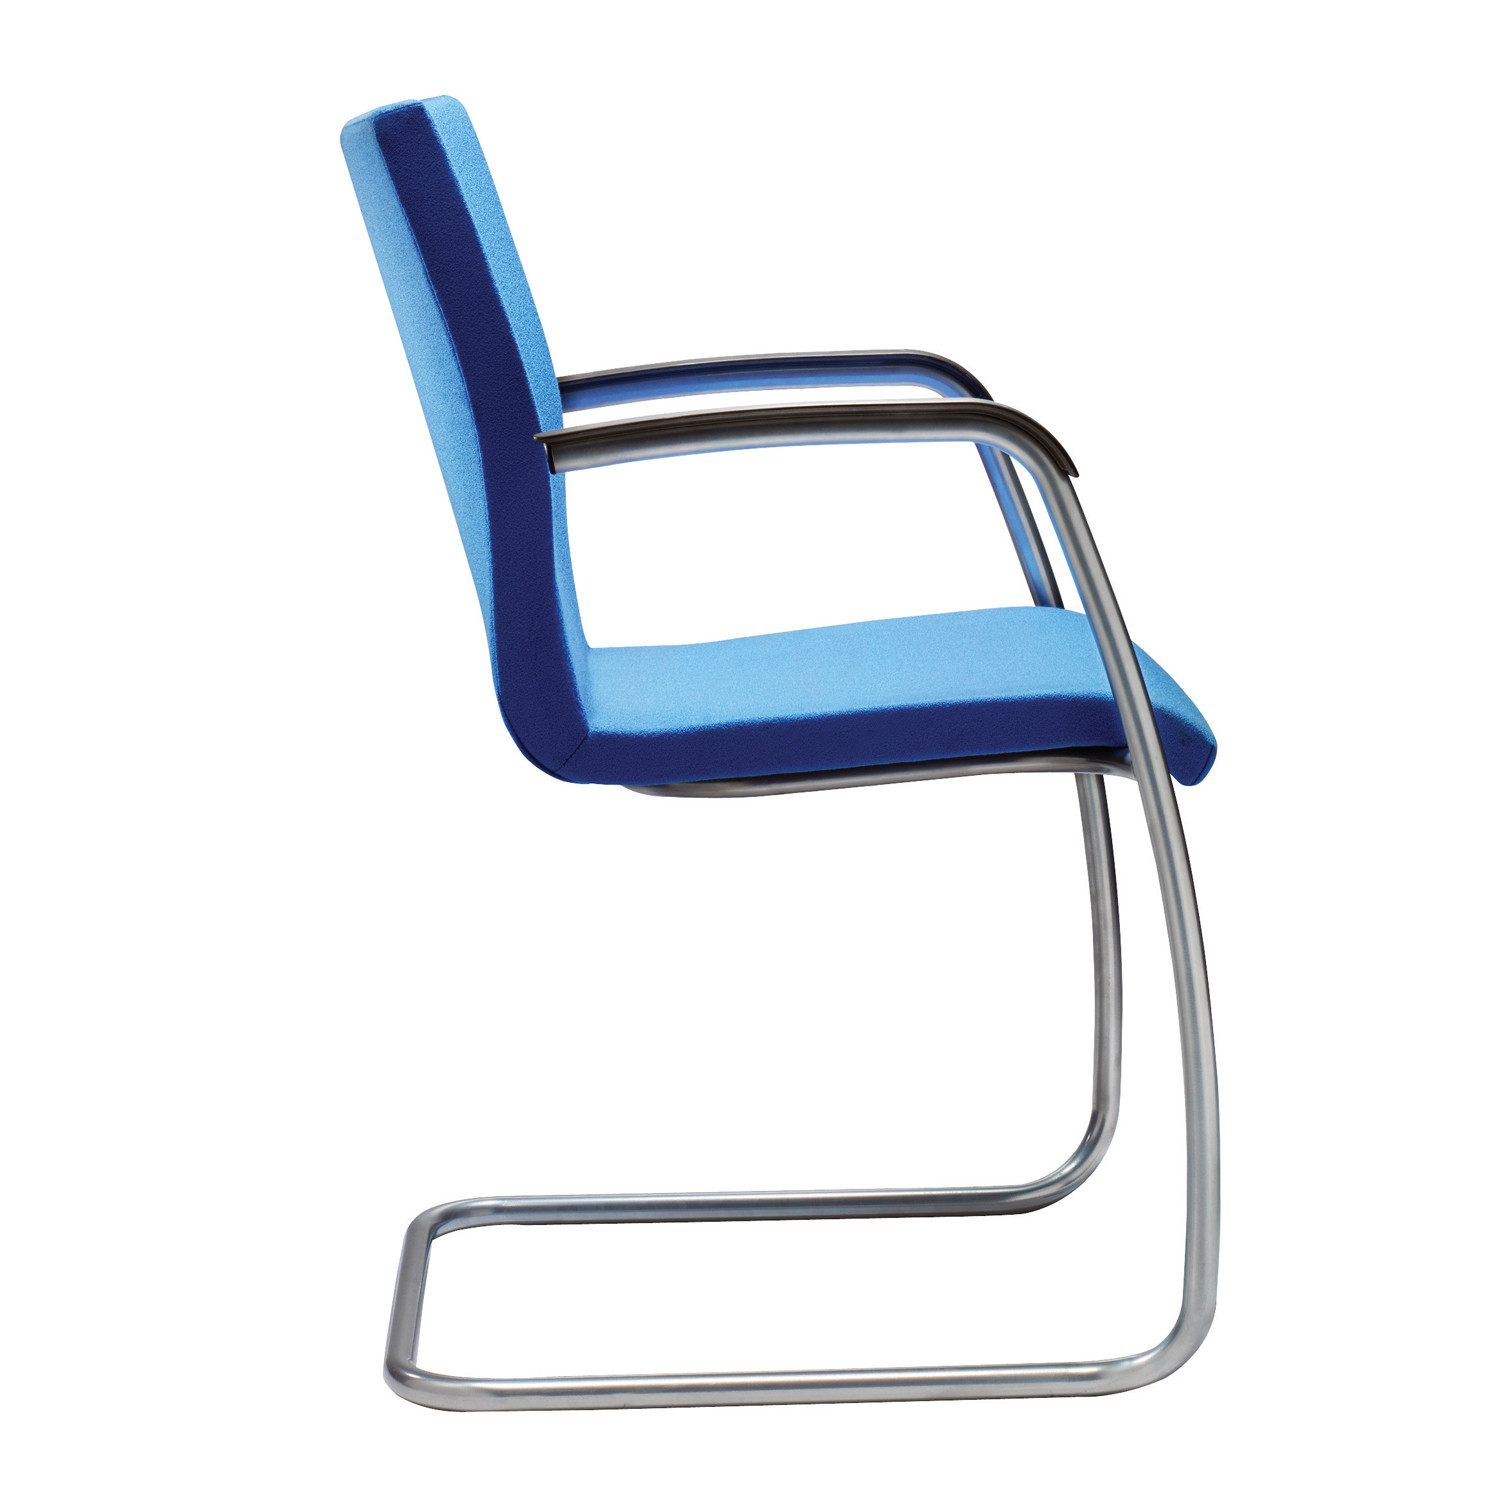 Team Cantilever Chair by Roger Webb Associates